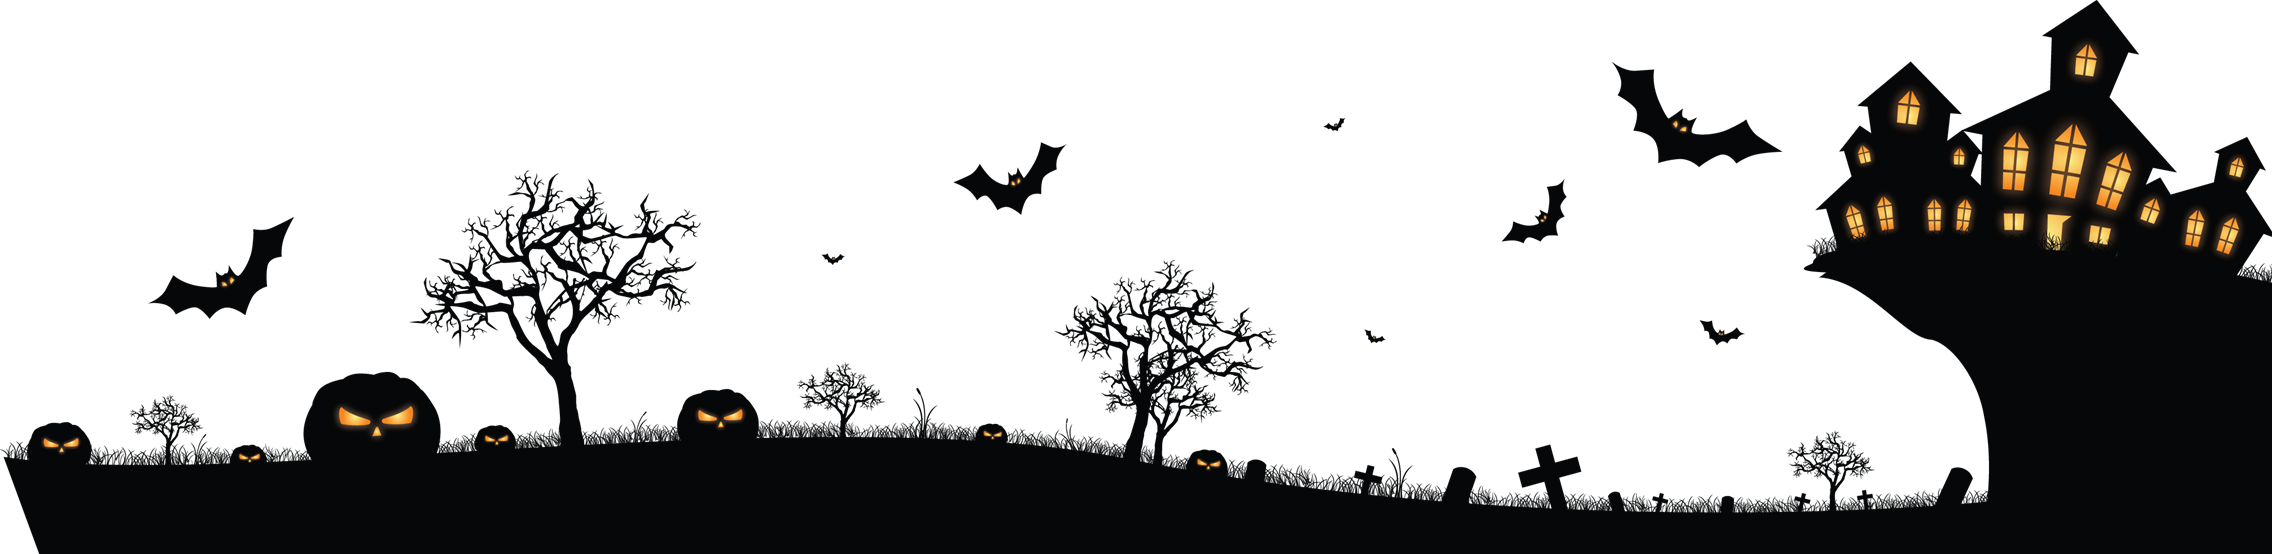 Happy halloween background png clipart images gallery for free.